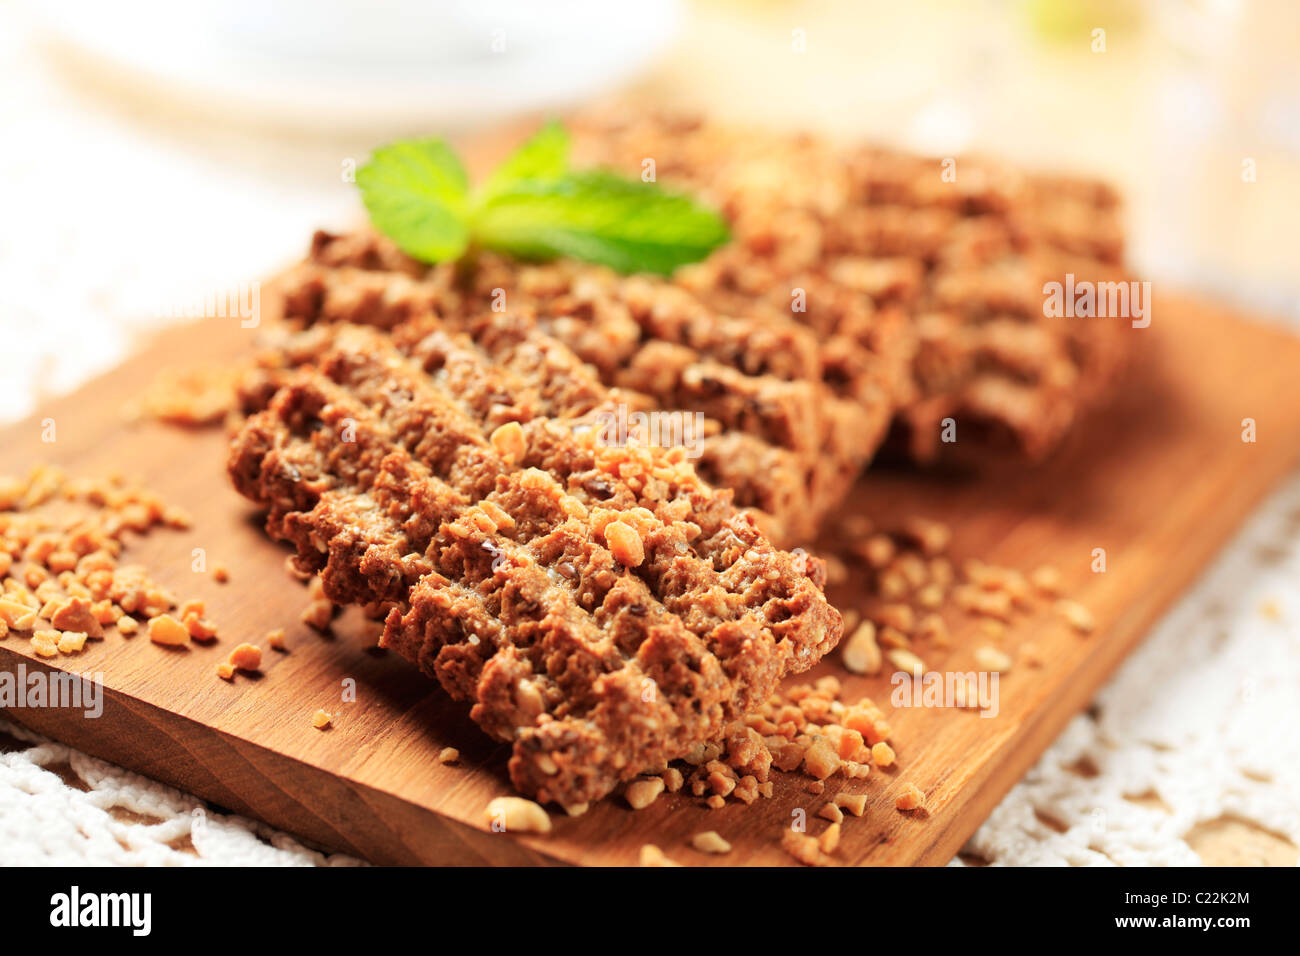 Wholegrain nutty cookies on a cutting board - Stock Image